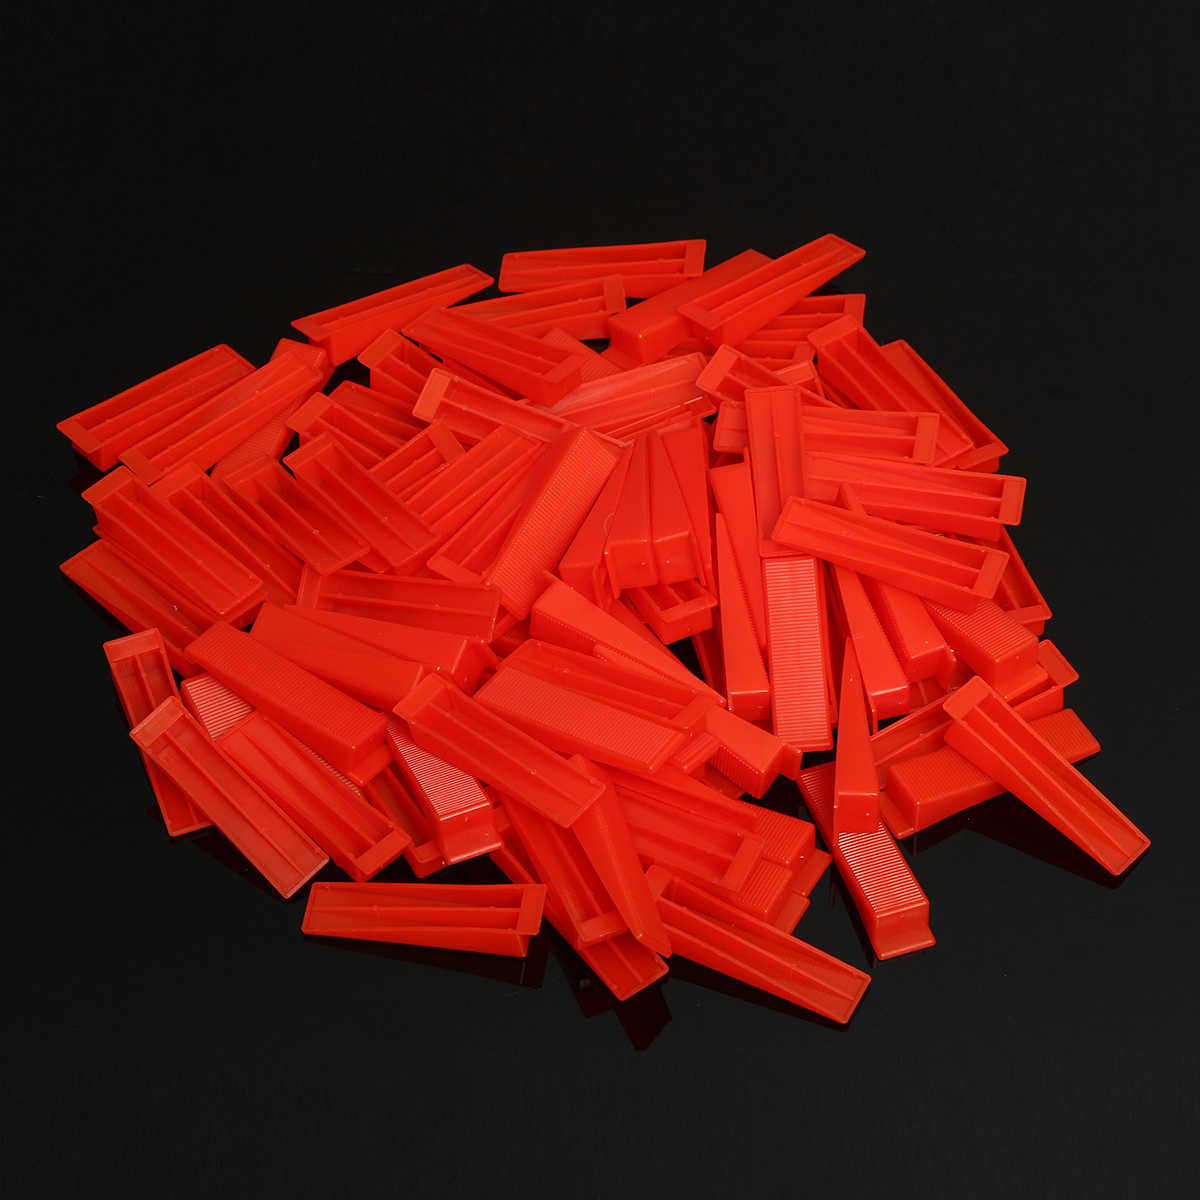 701Pcs Tile Leveling System 500x 1.5mm Clips+200x Red Wedges+1x Pliers Floor Wall Tiling Spacer Tools